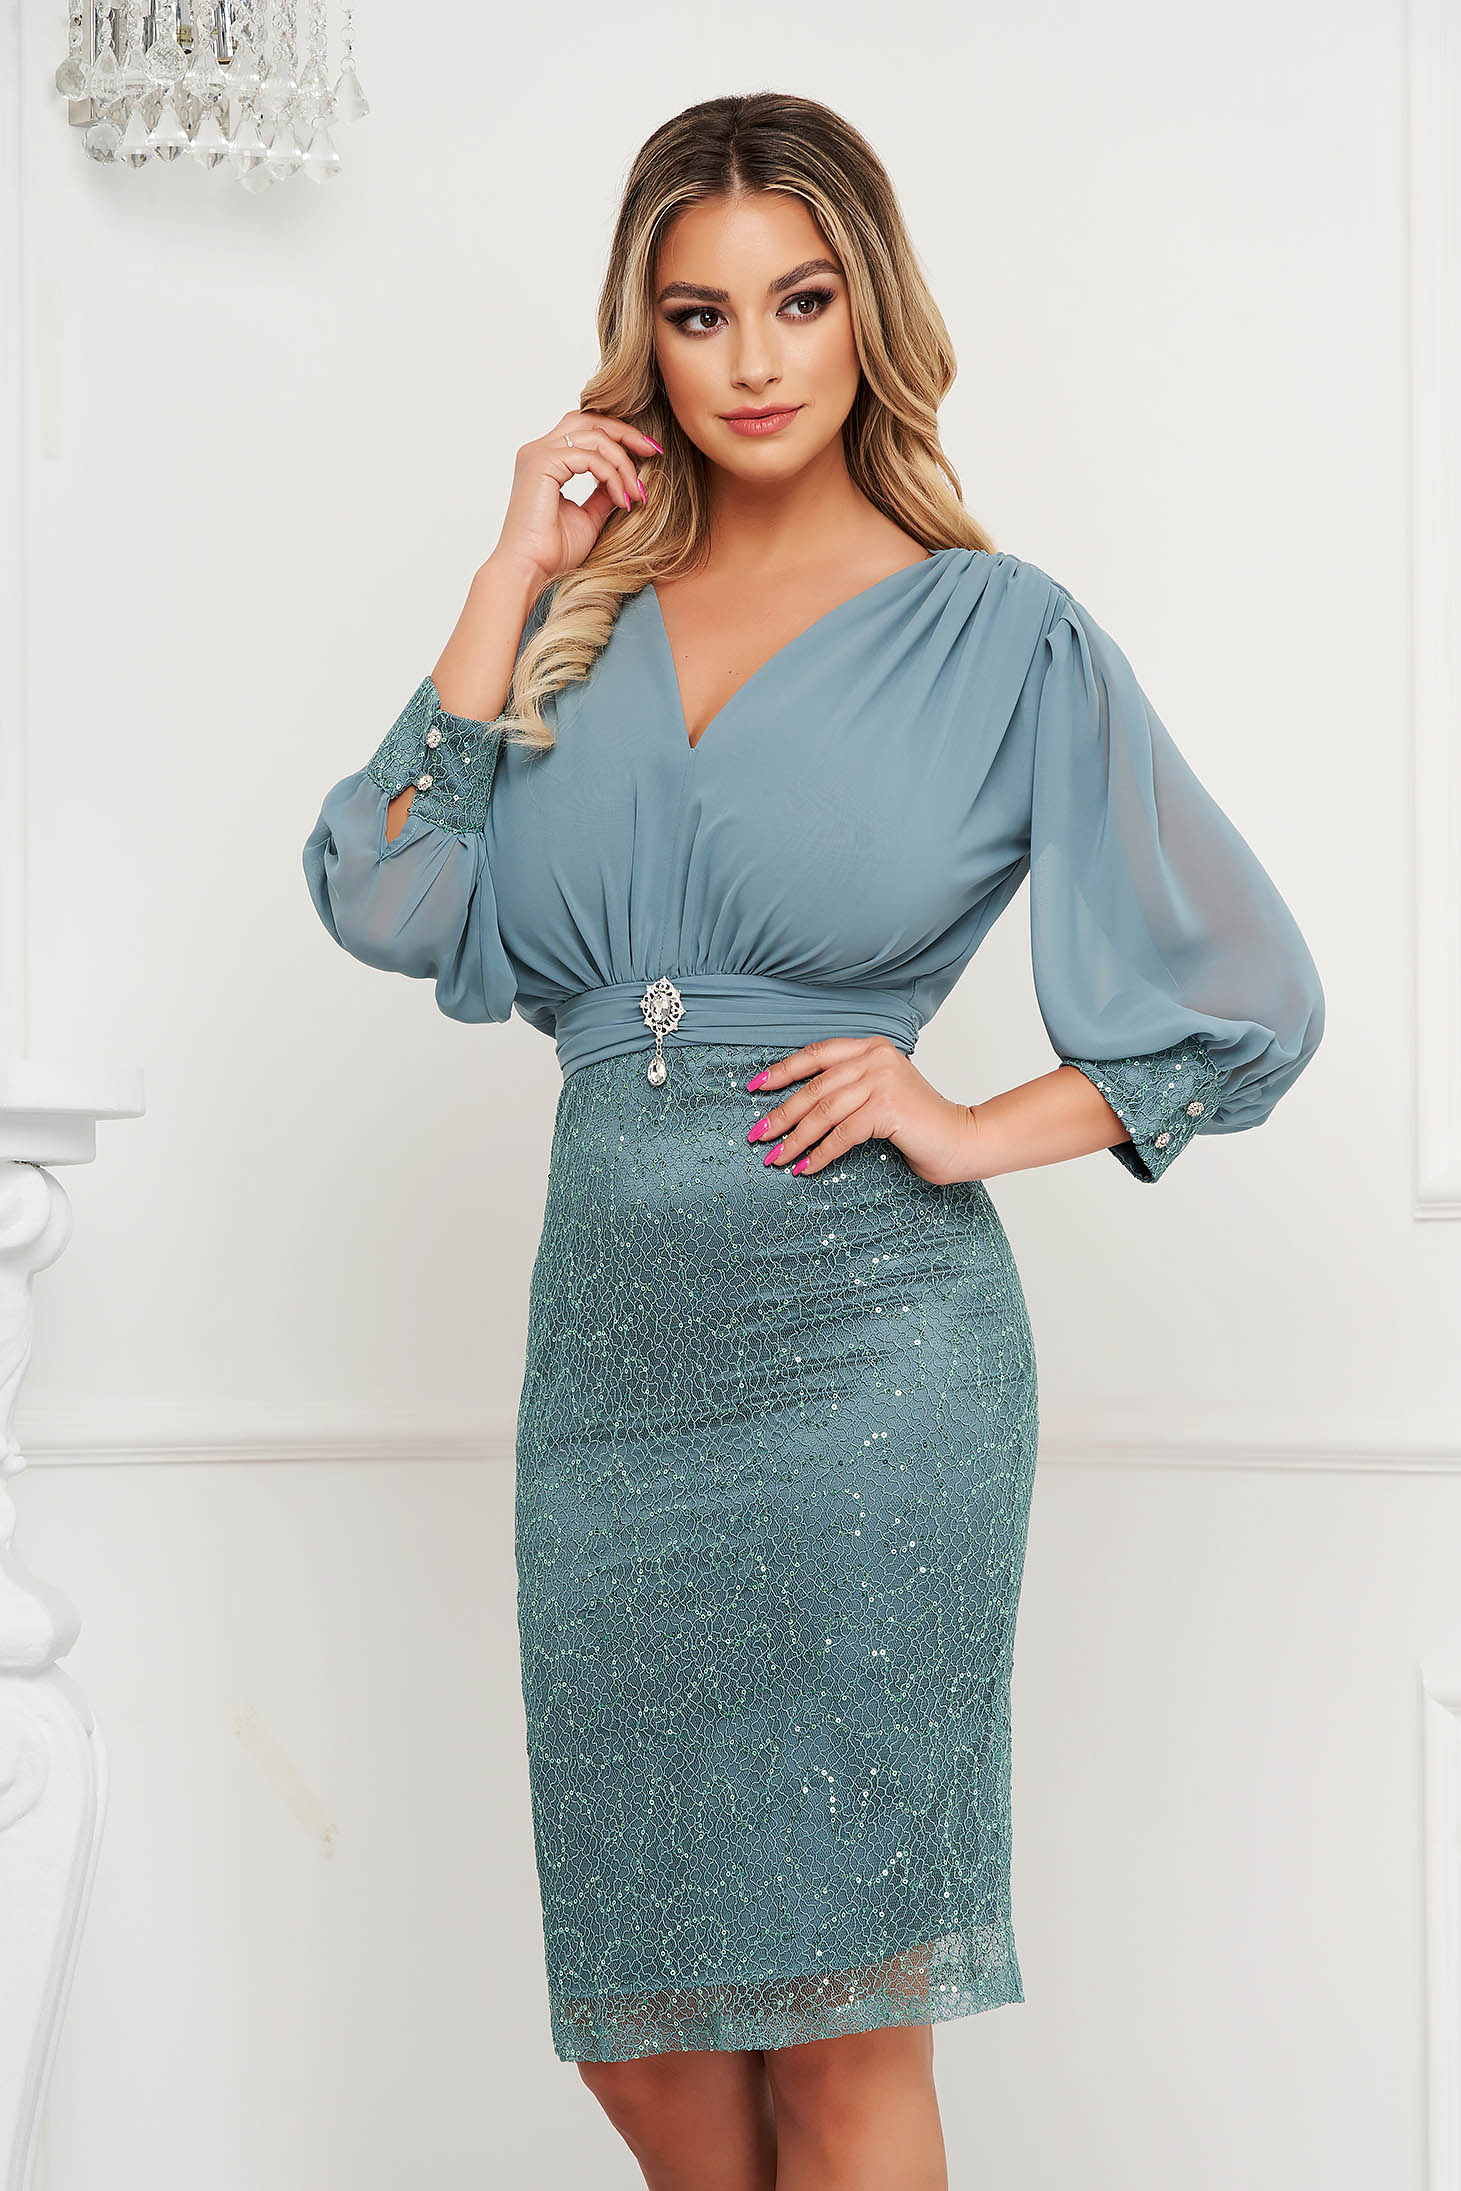 Mint pencil dress satin texture skirt with vail overlap accessorized with breastpin